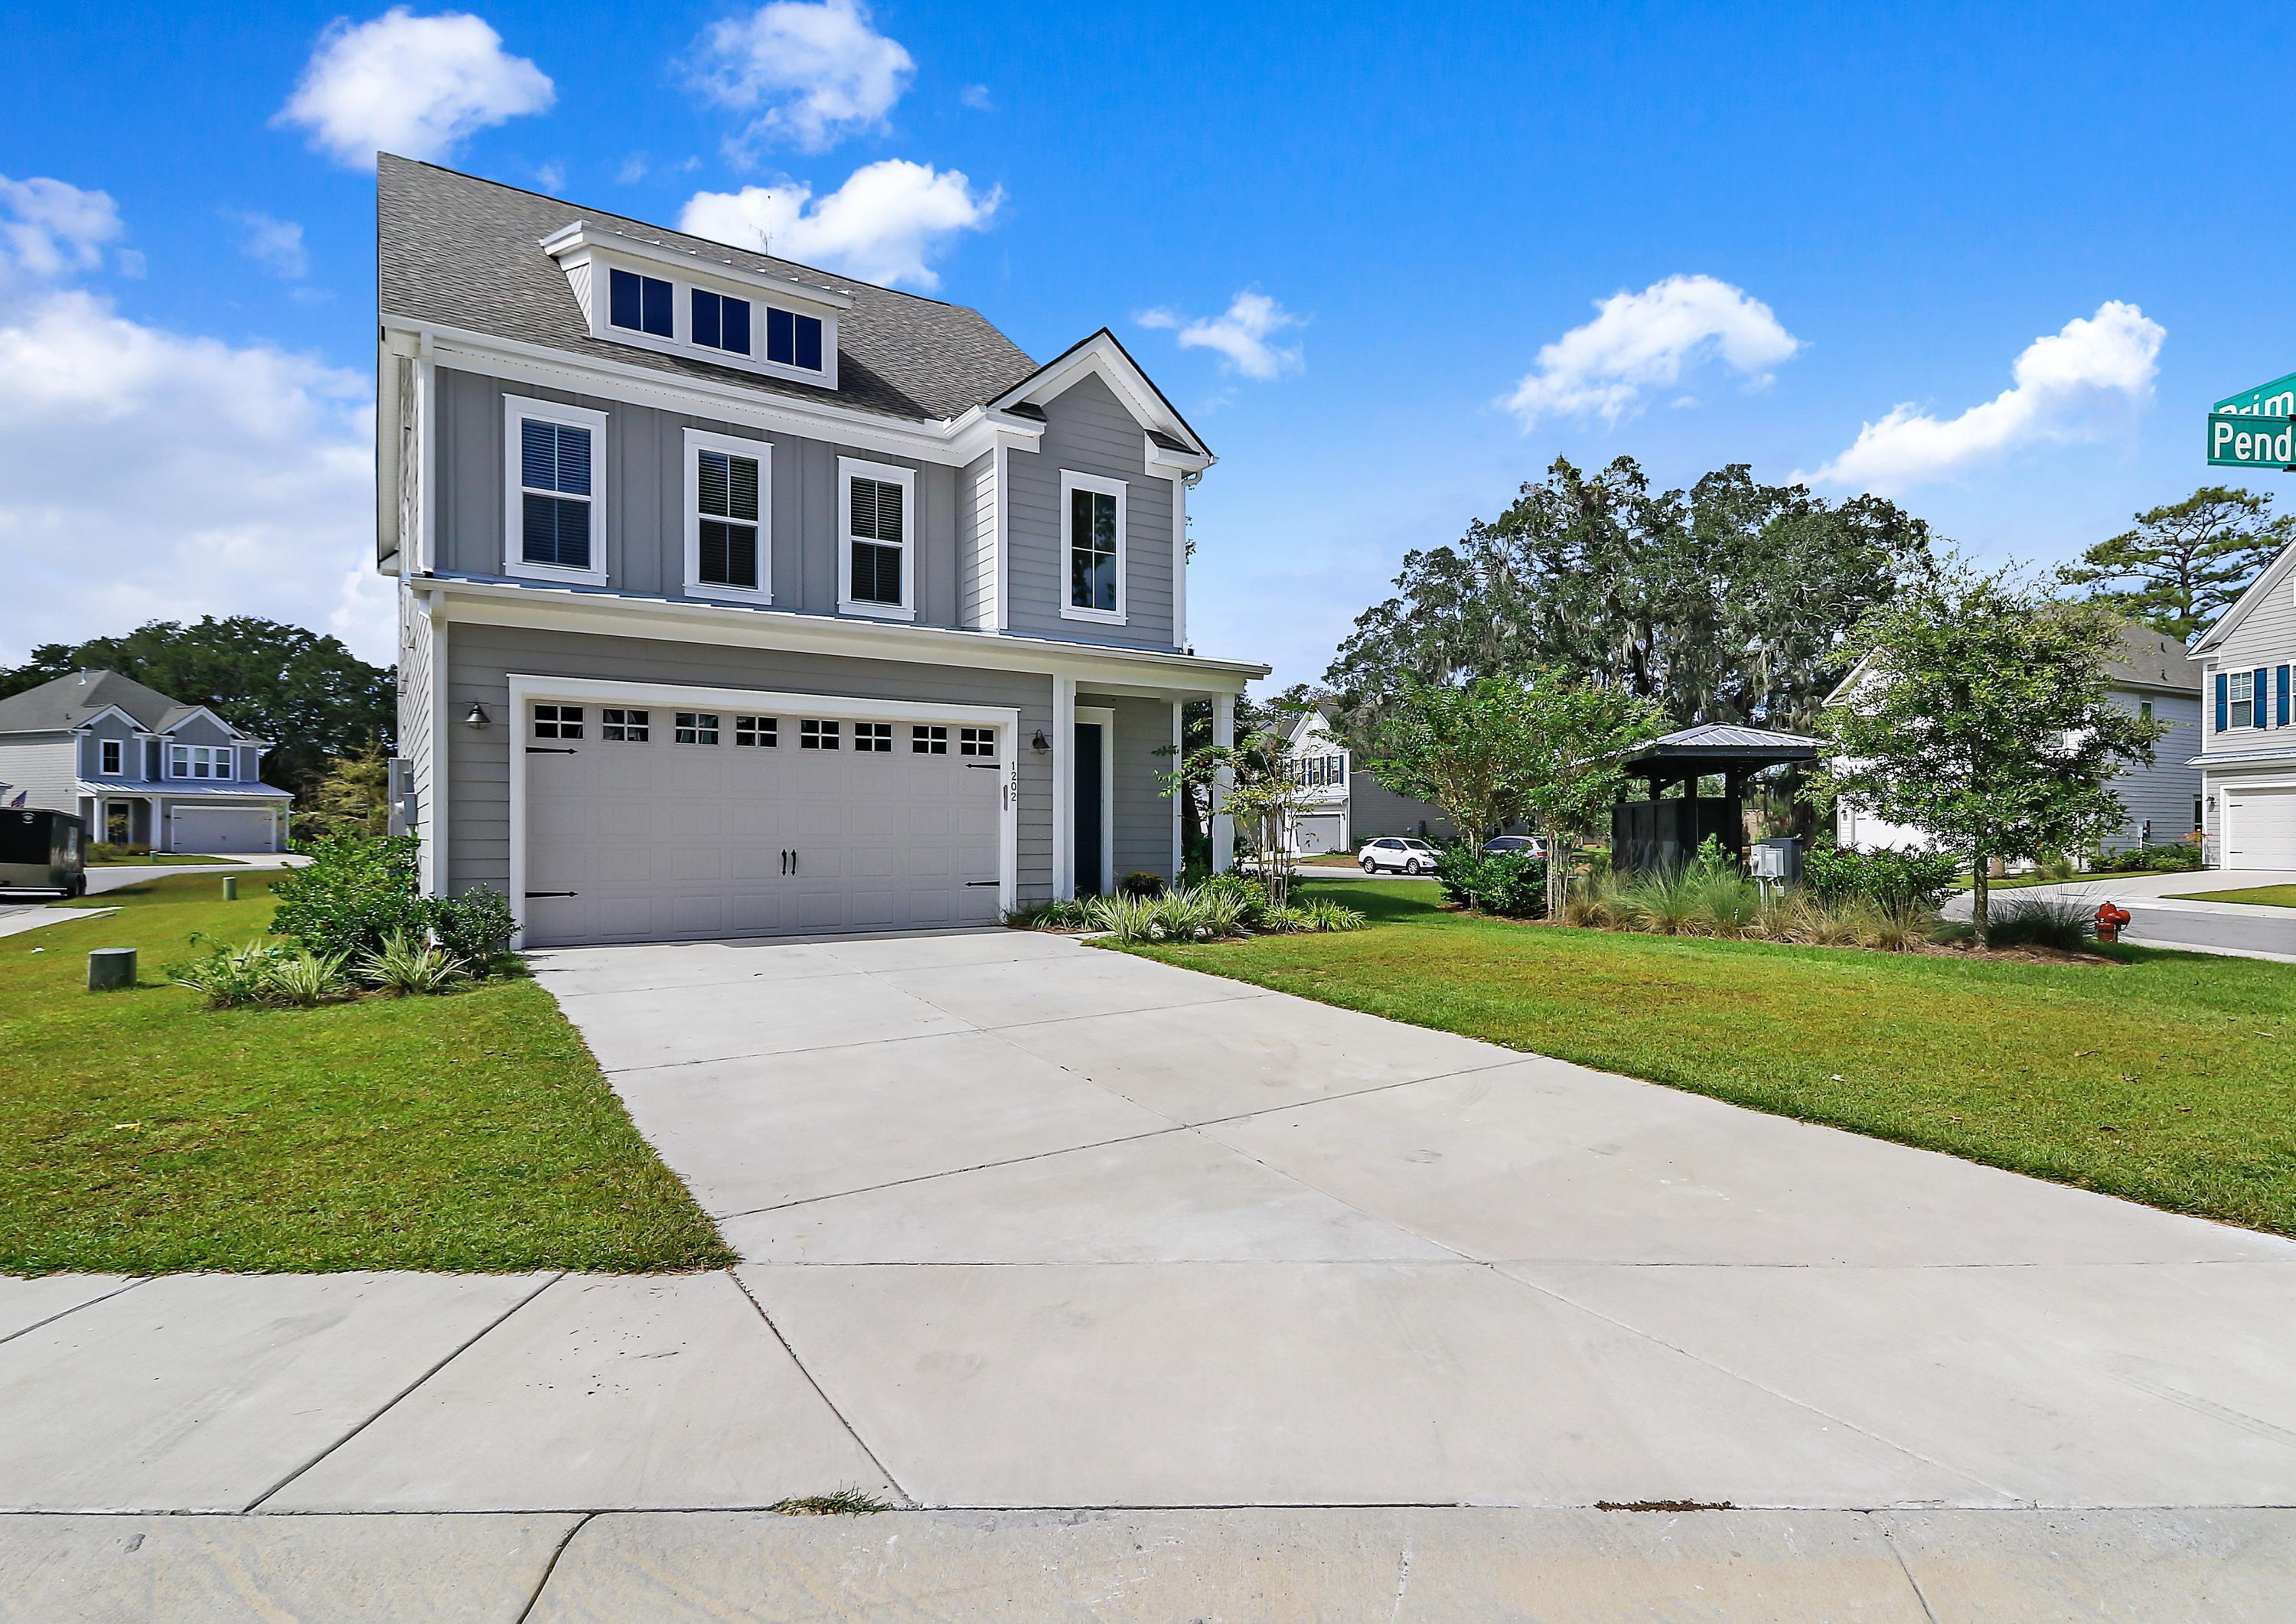 Pointe at Primus Homes For Sale - 1202 Penderlee, Mount Pleasant, SC - 1